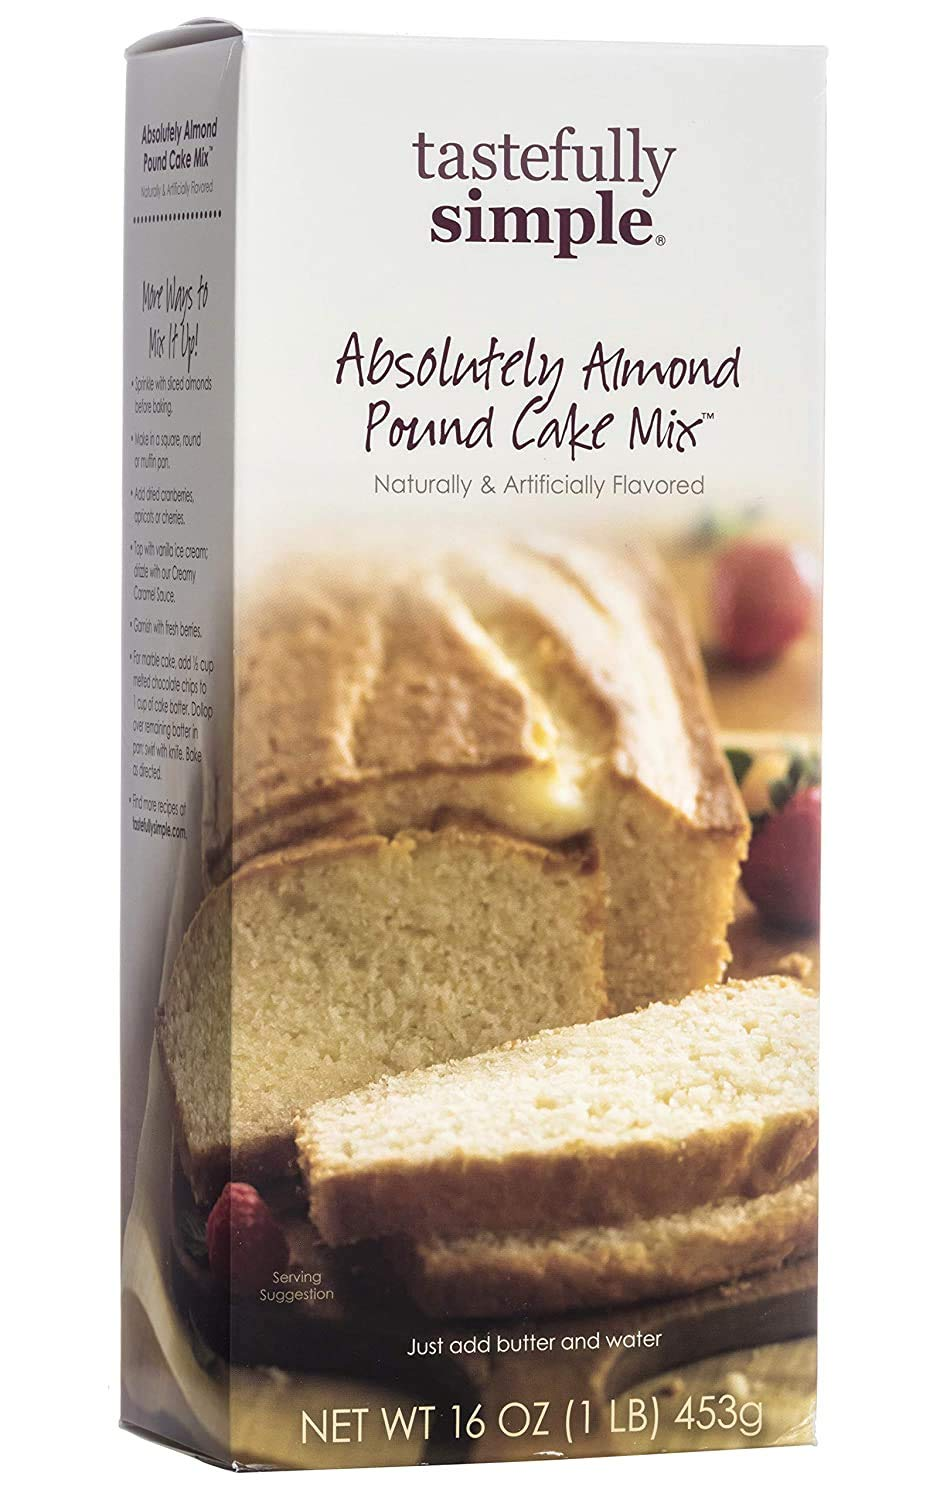 Tastefully Simple Absolutely Almond Pound Cake Mix - Make Cupcakes, Bundt Cakes or Trifle Sponge - 16 oz (2-Pack)